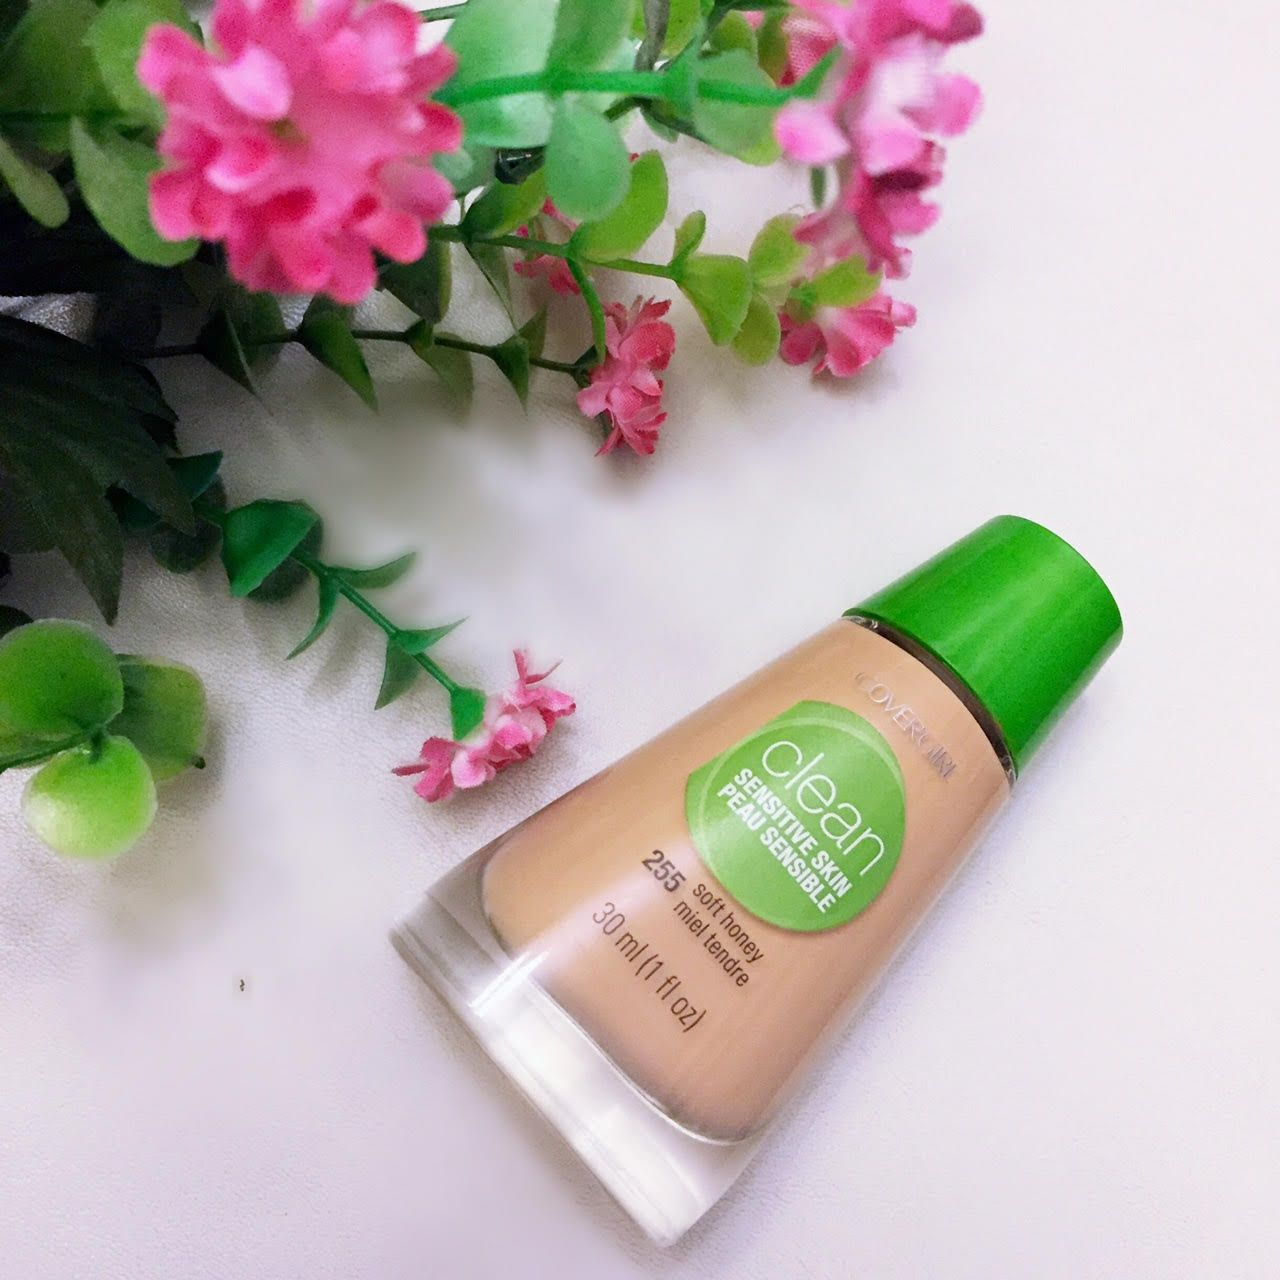 How 'clean' was this Covergirl Clean foundation? Find out